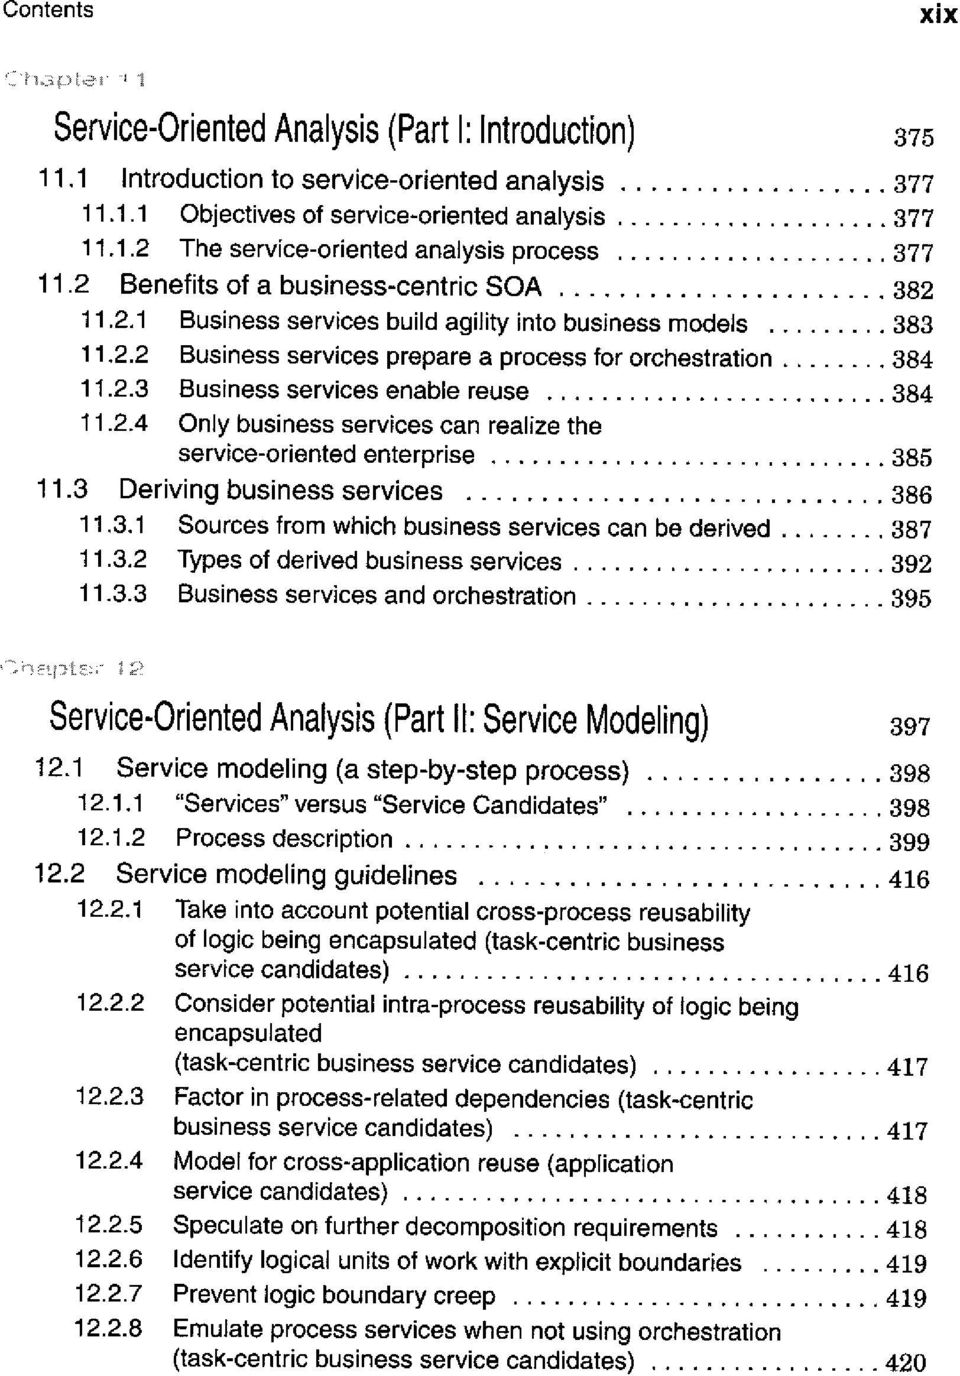 2.4 Only business Services can realize the service-oriented enterprise 385 11.3 Deriving business Services 386 11.3.1 Sources from which business Services can be derived 387 11.3.2 Types of derived business Services 392 11.